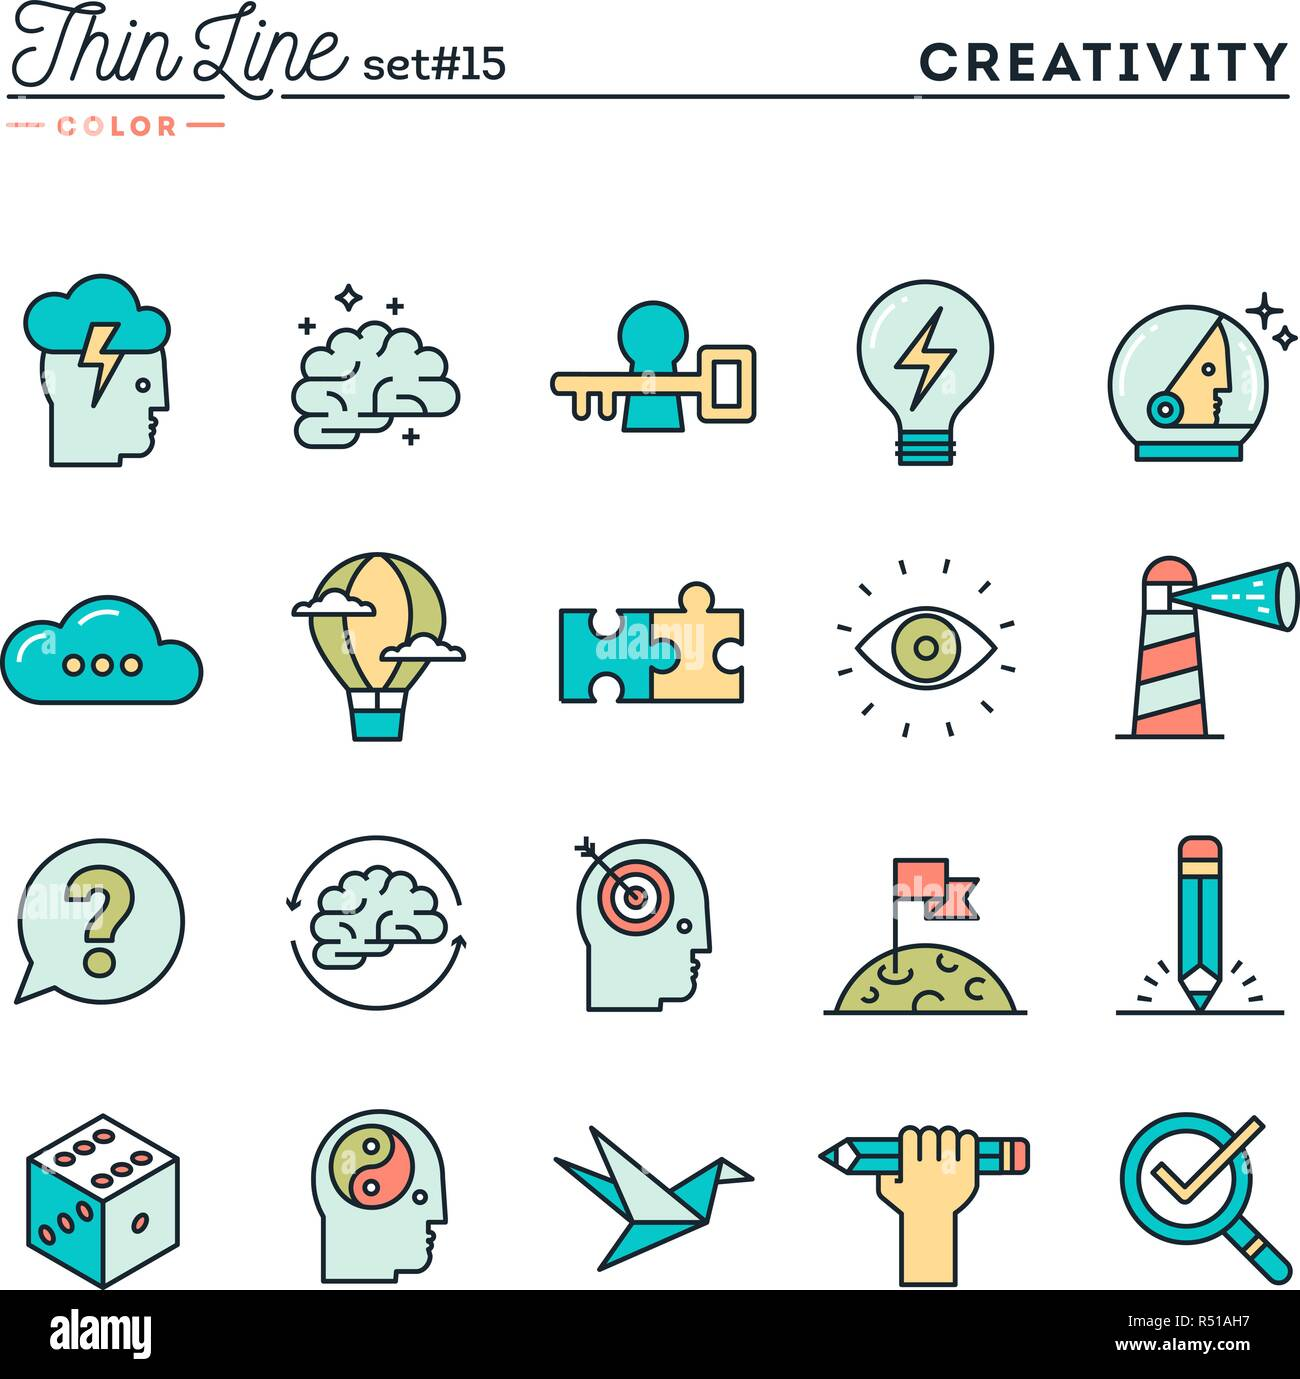 Creativity, imagination, problem solving, mind power and more, thin line color icons set - Stock Vector